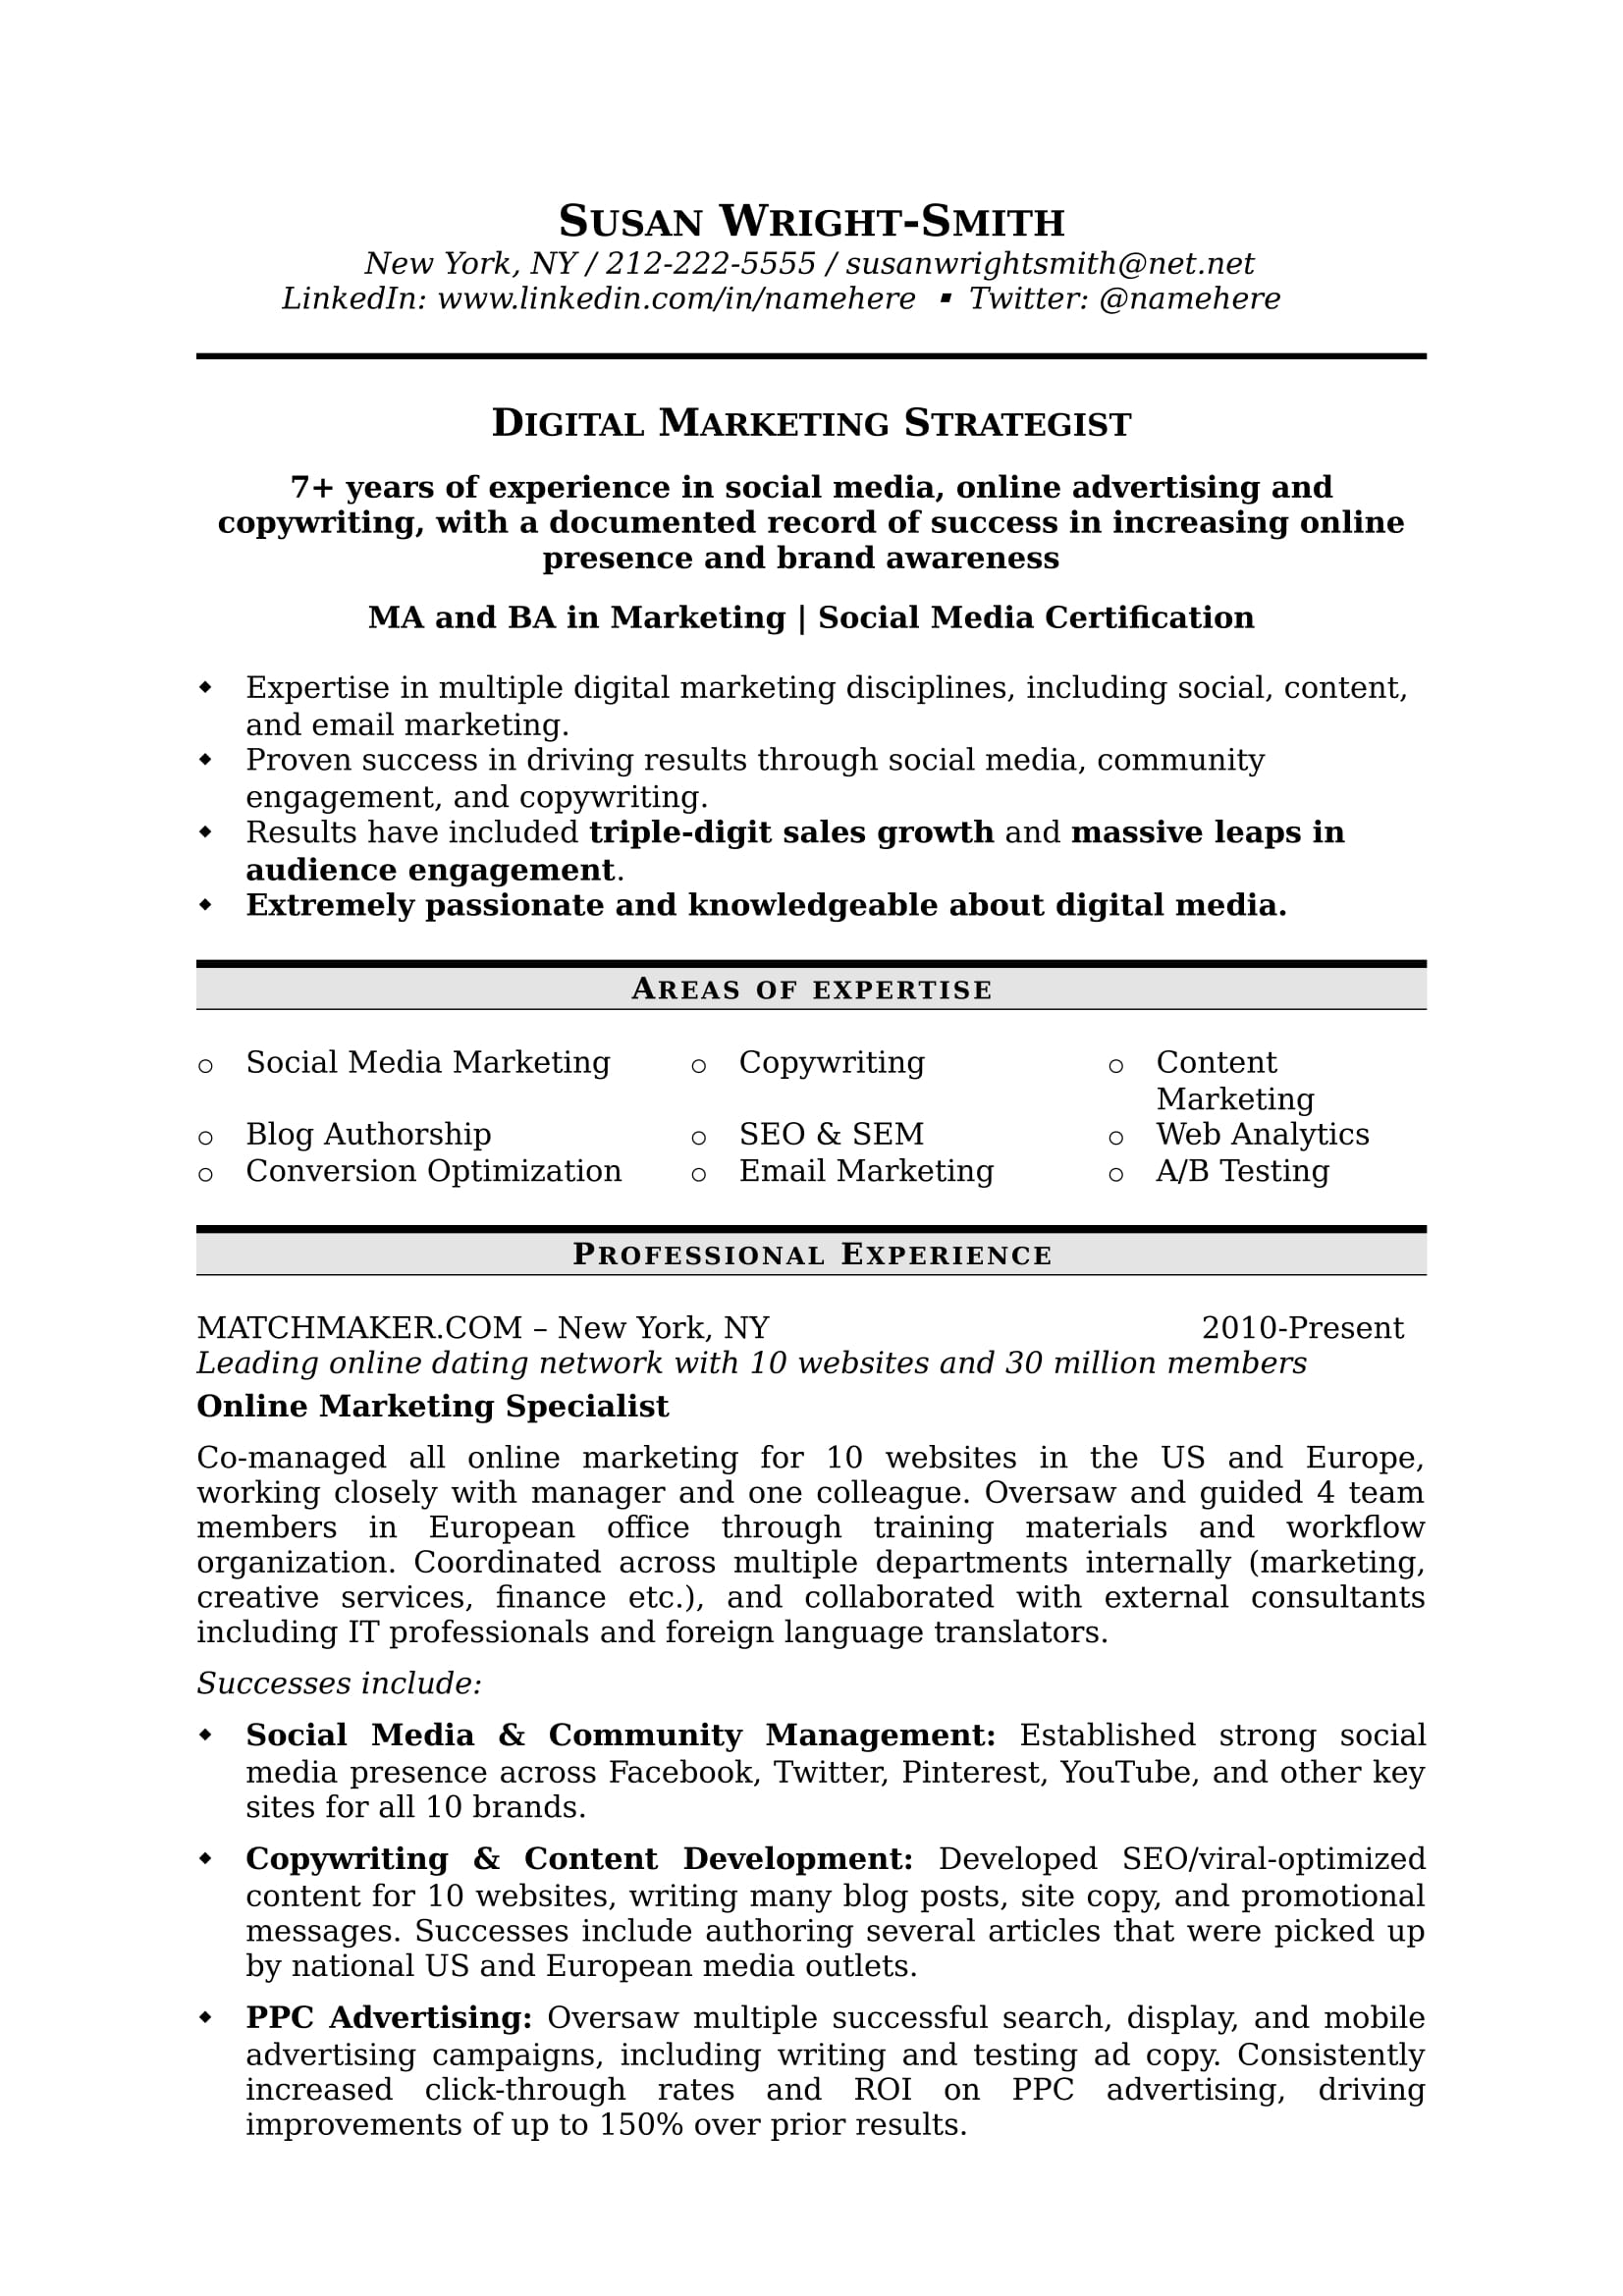 how to write a marketing resume hiring managers will notice digital strat 1 jpg